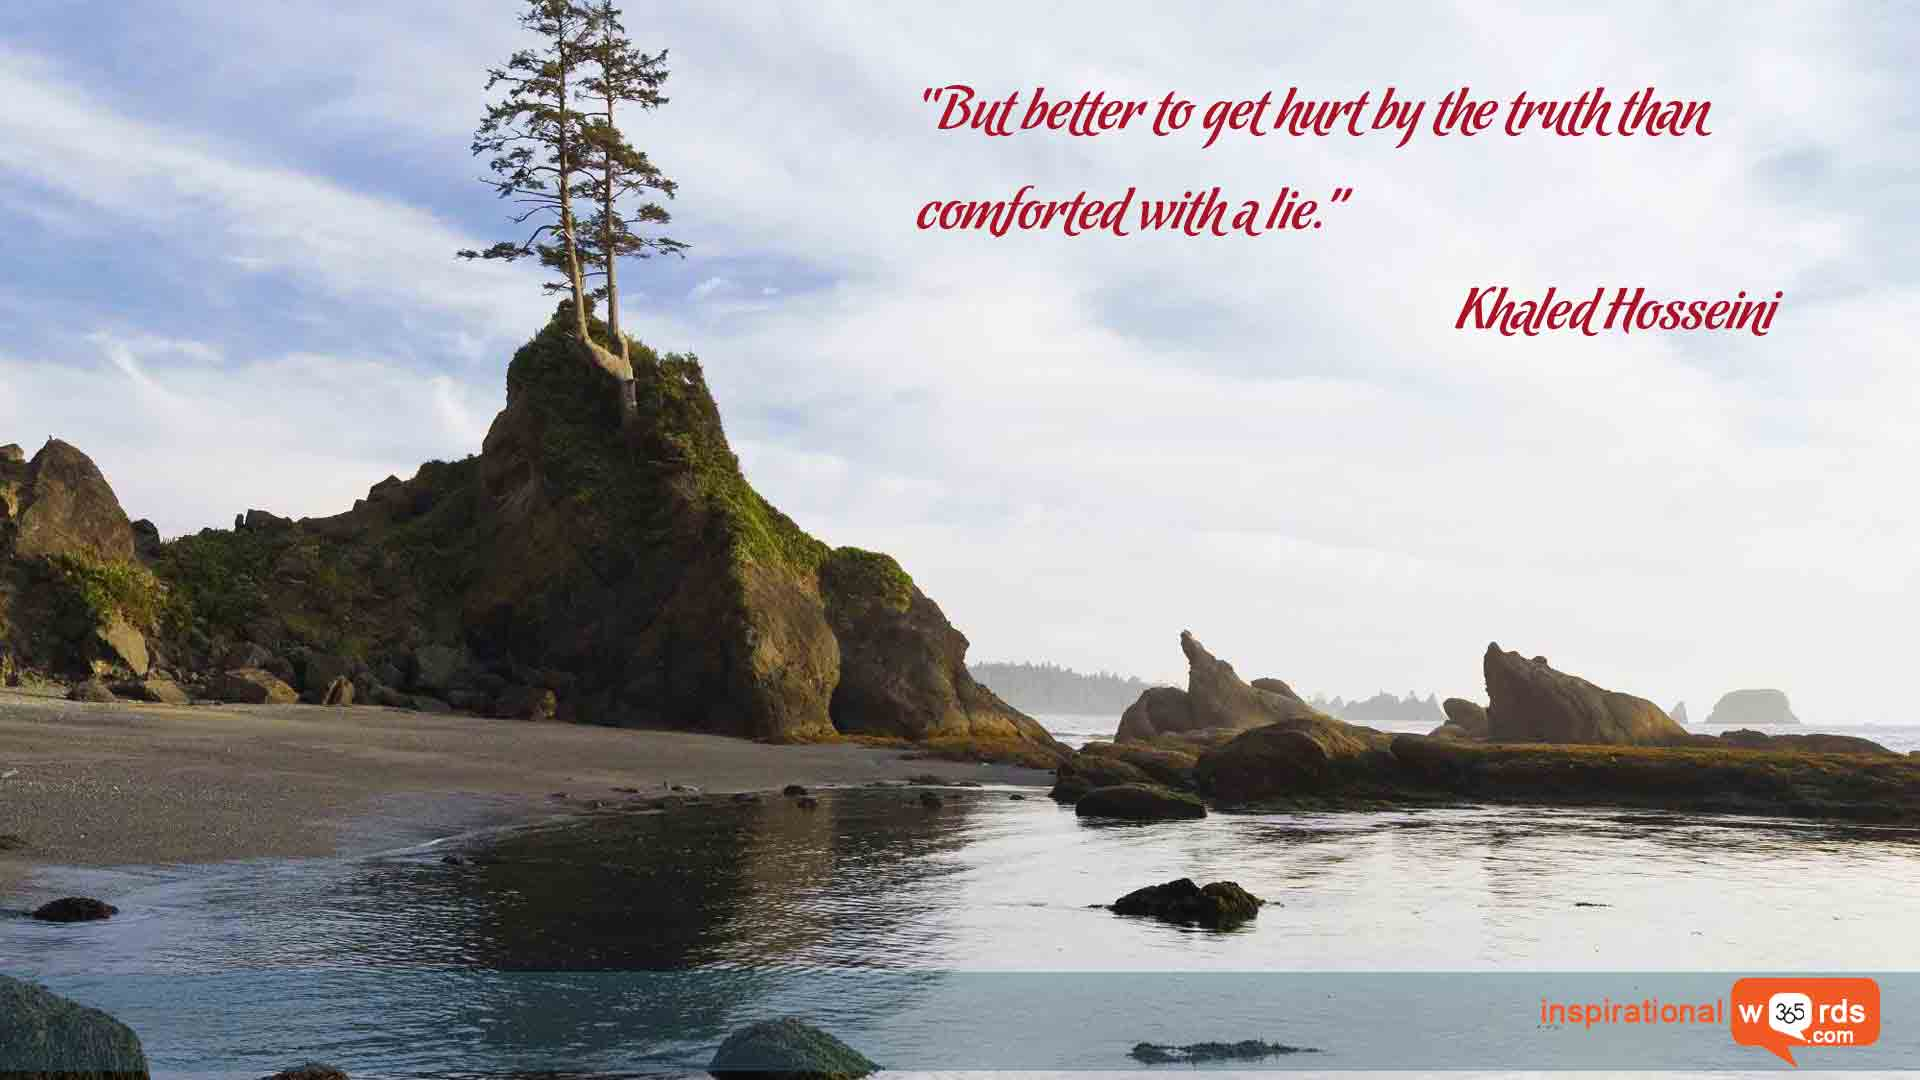 Inspirational Wallpaper Quote by Khaled Hosseini